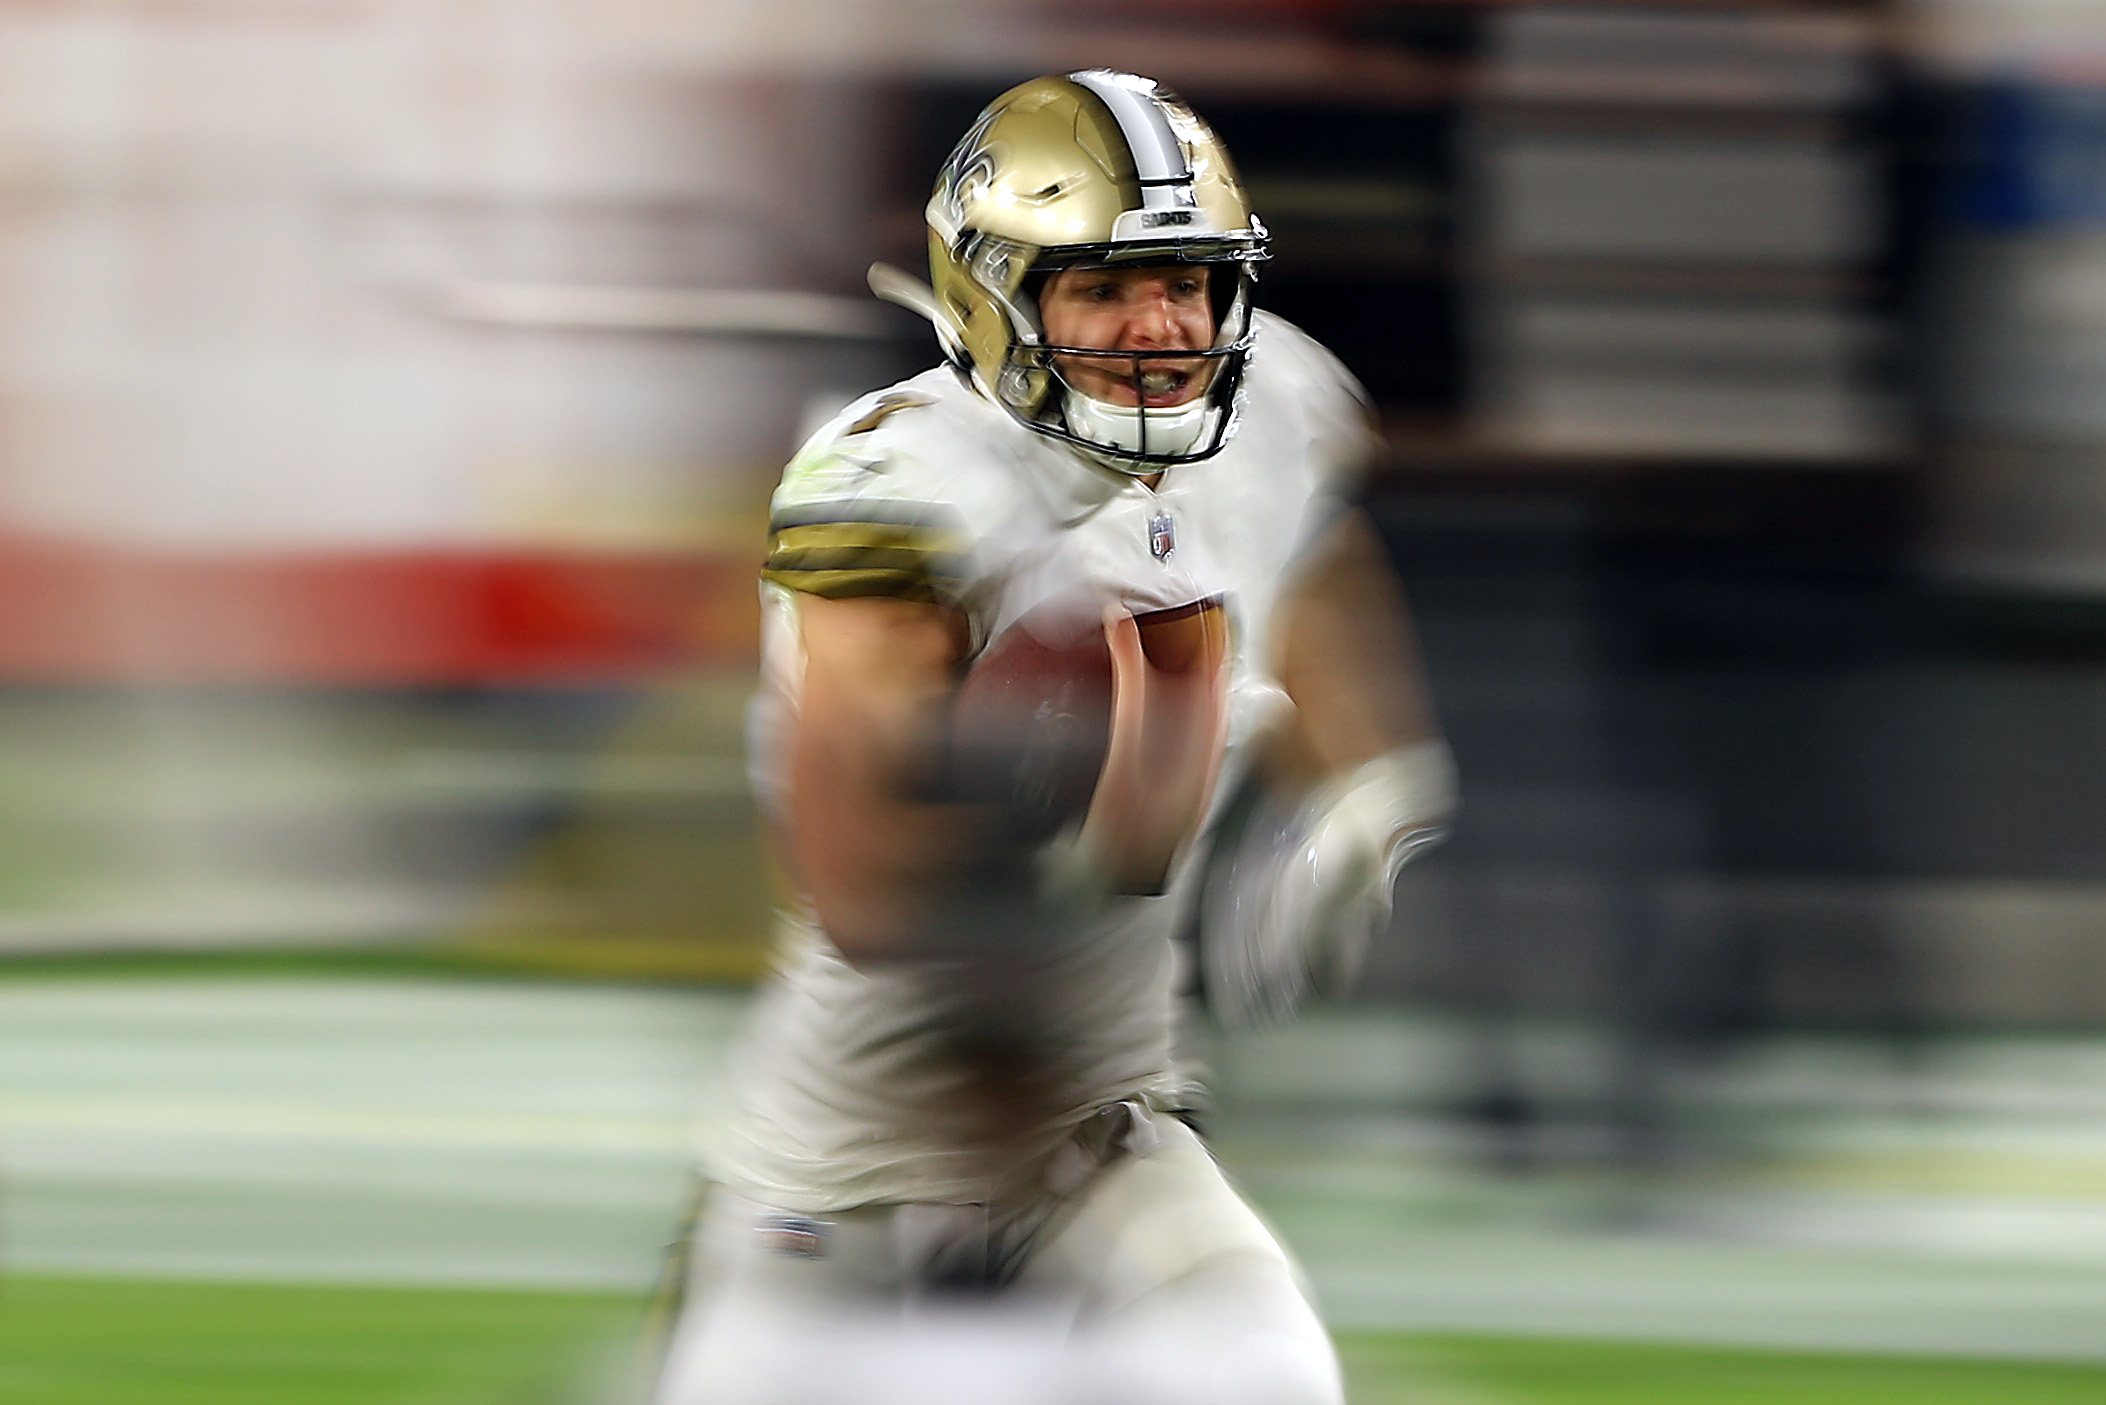 The New Orleans Saints are about to begin the Taysom Hill era. With Drew Brees out, Hill will start at quarterback in Week 11 instead oThe New Orleans Saints are about to begin the Taysom Hill era. With Drew Brees out, Hill will start at quarterback in Week 11 instead of Jameis Winston.f Jameis Winston.